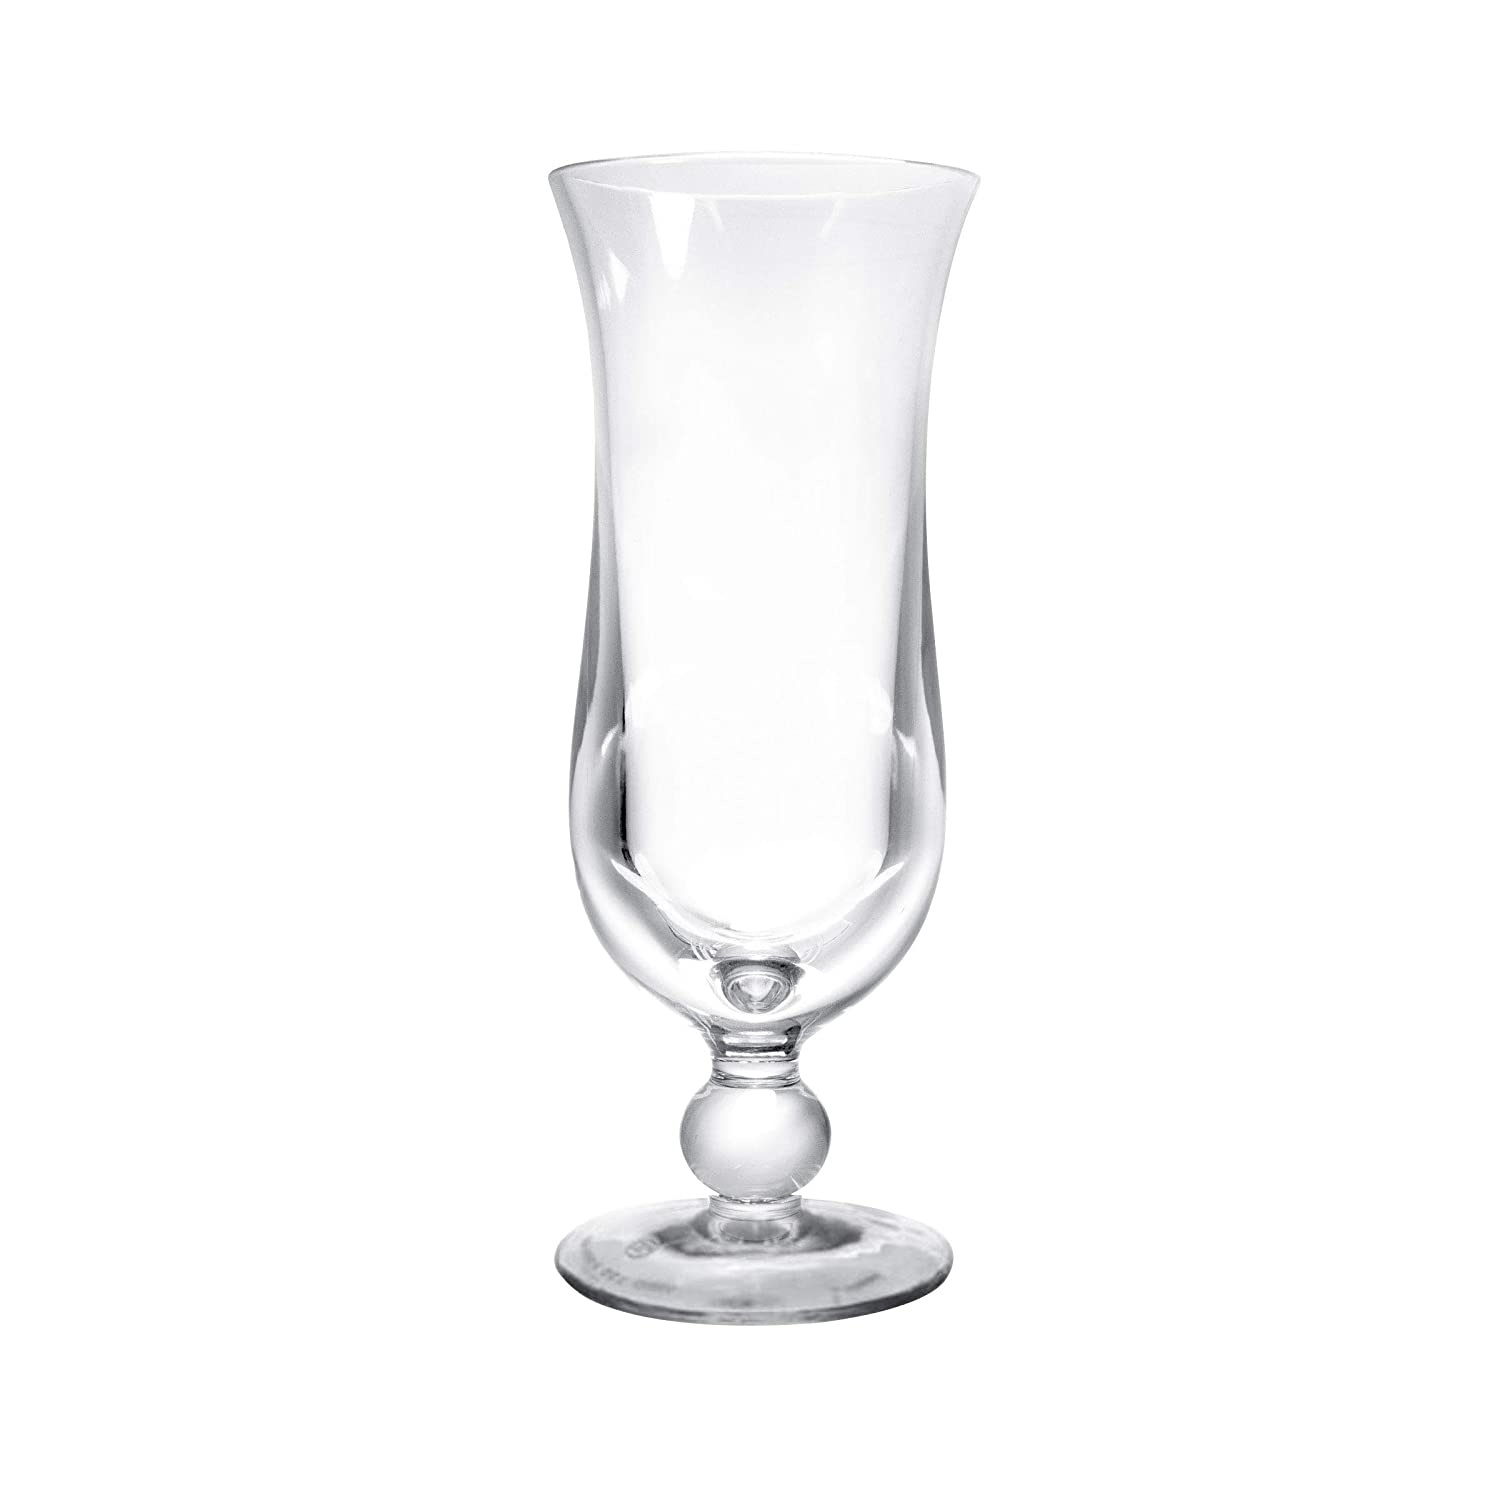 "Elite Global Solutions DW11PC-CL Hurricane Glass, 3"" Dia. x 8"" h, Polycarbonate, Clear Polycarbonate (Pack of 24)"